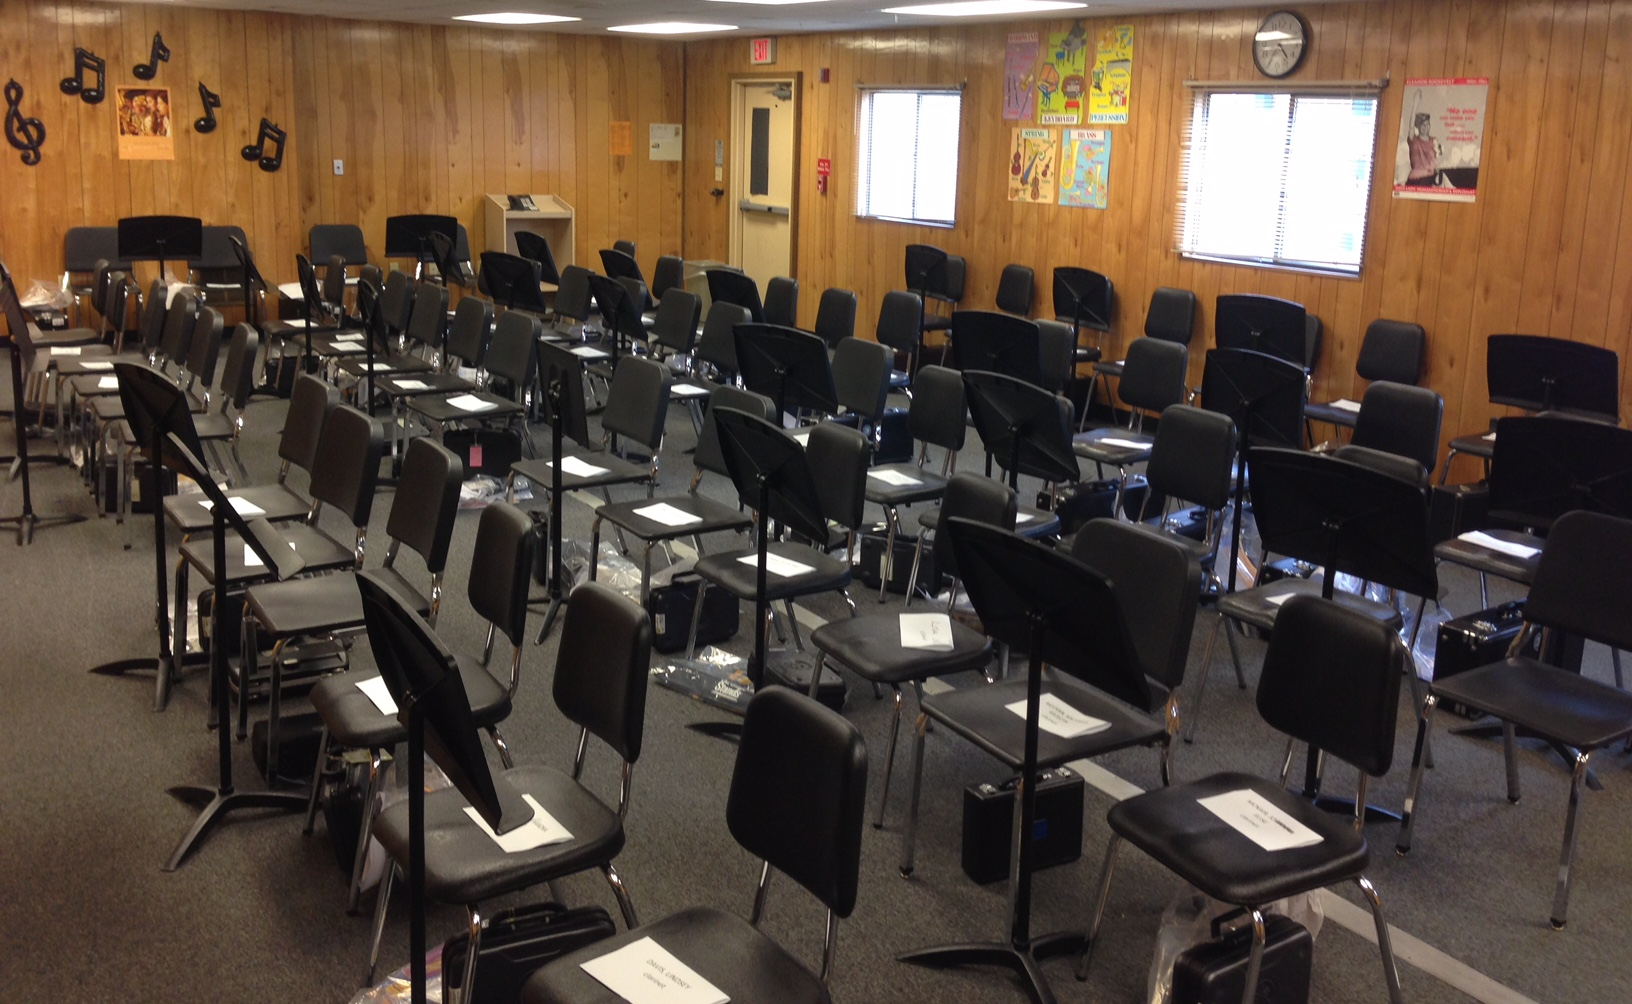 Beginning band classes can be so large. This is my classroom on the first day of band a few years back. That's 66 chairs - just for clarinet and saxophone students!